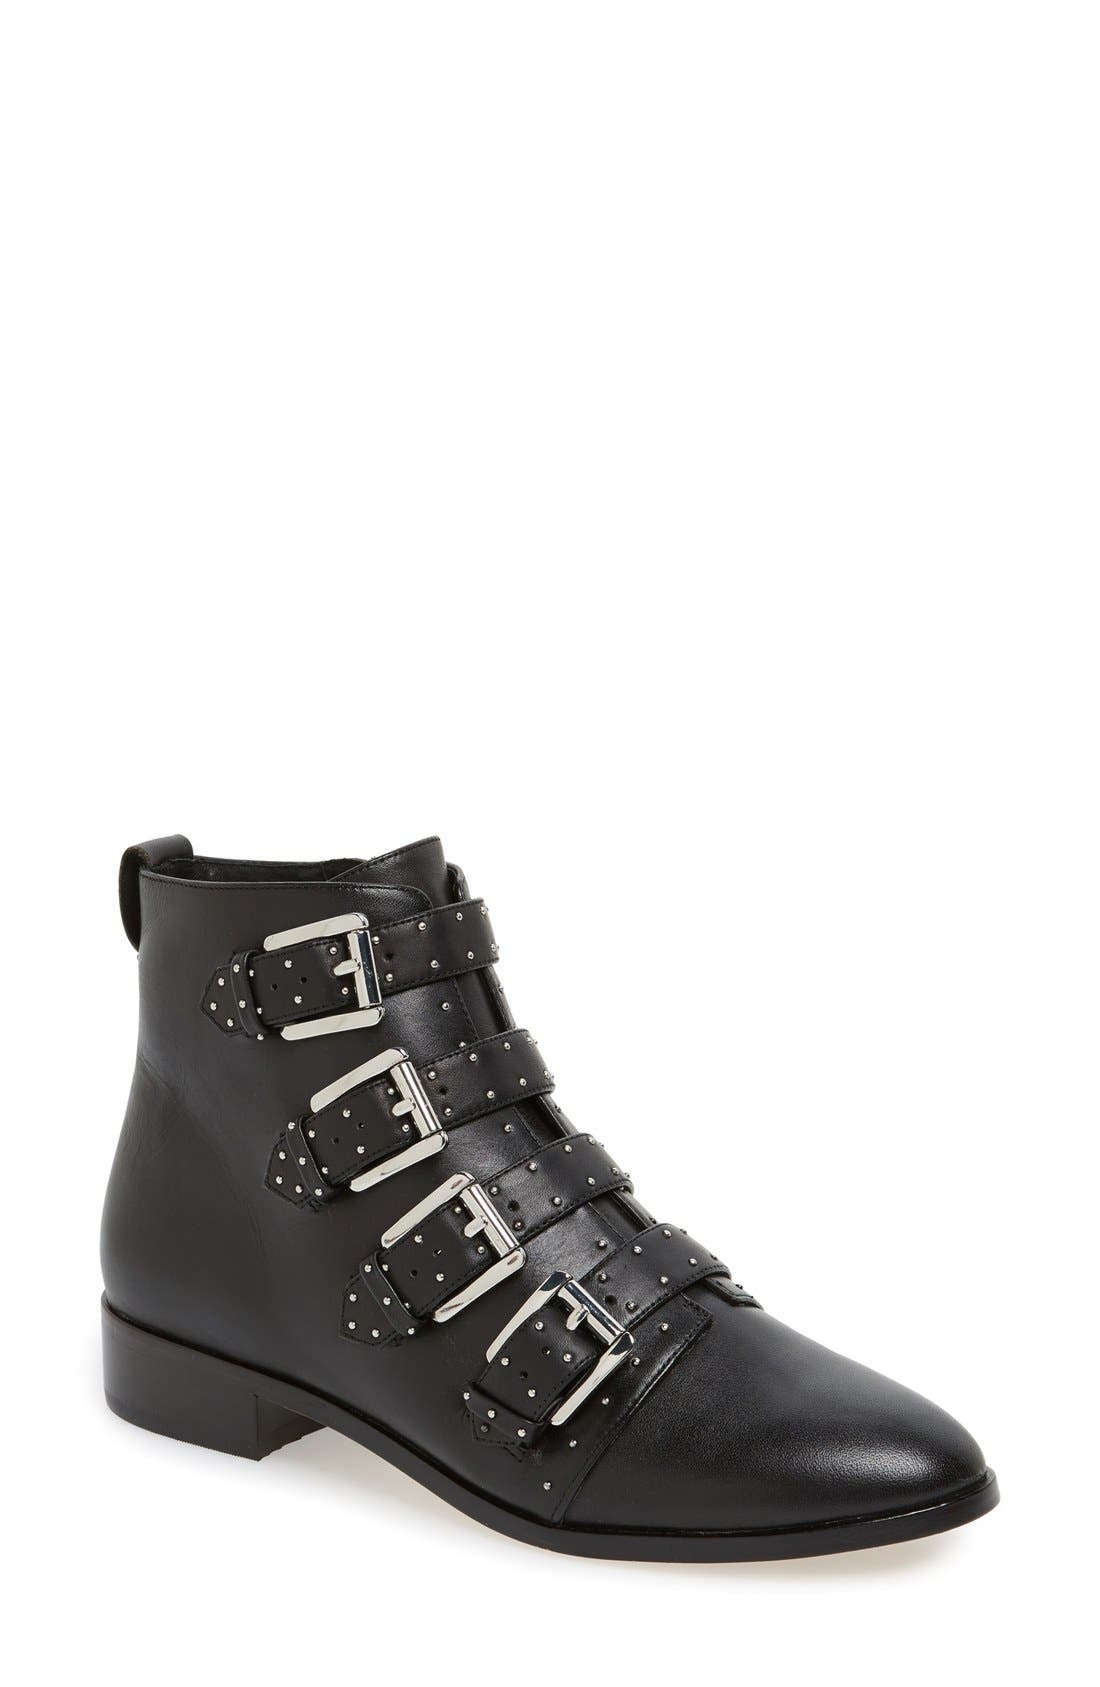 REBECCA MINKOFF 'Maddox' Buckle Bootie, Main, color, 001